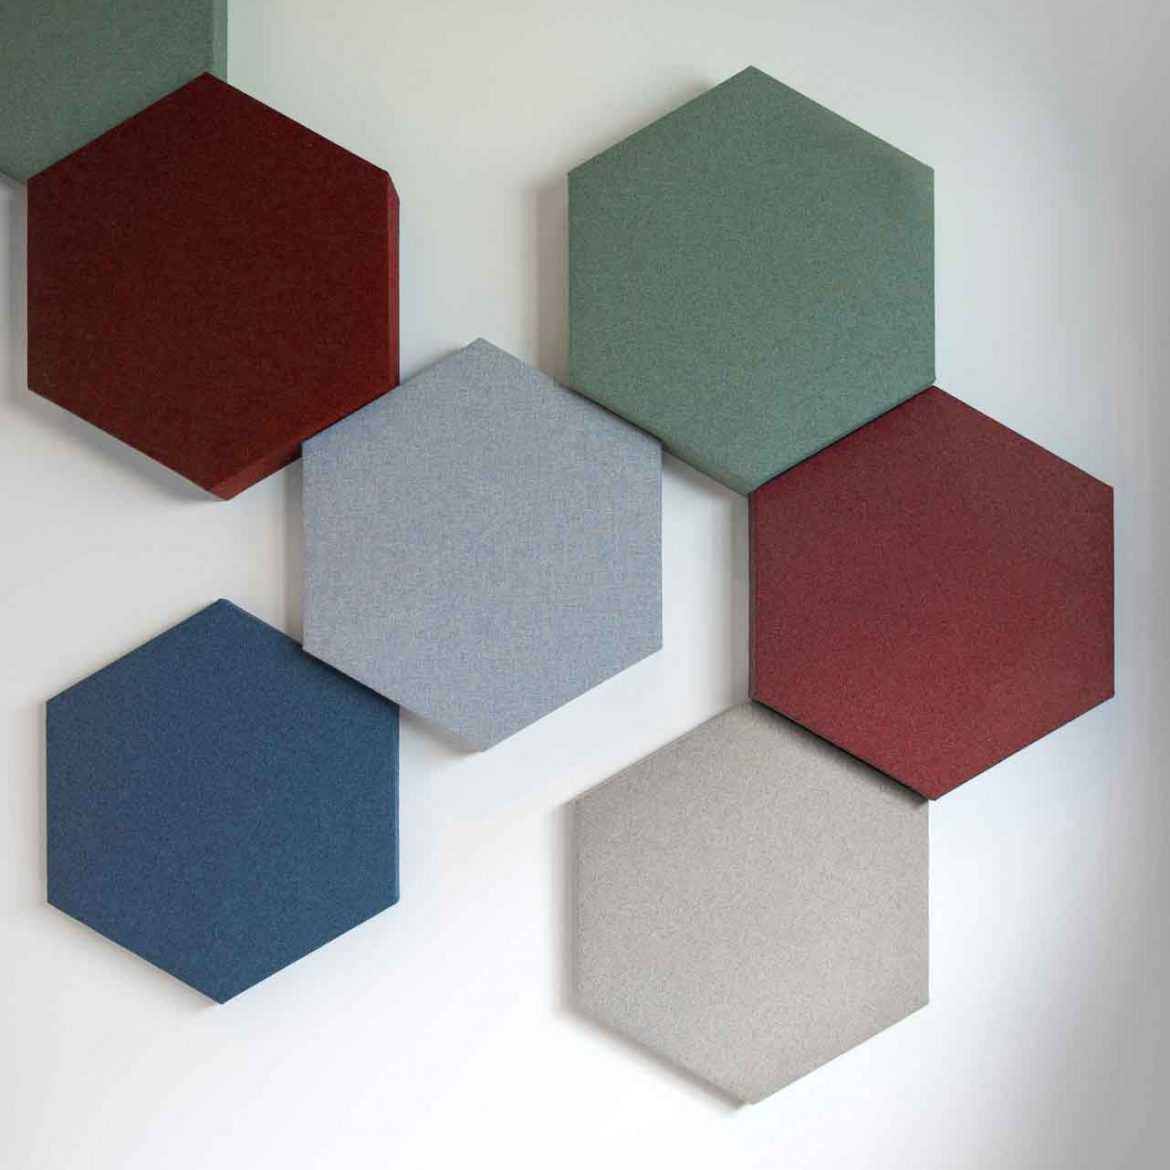 Fabric-wrapped Acoustic Panels